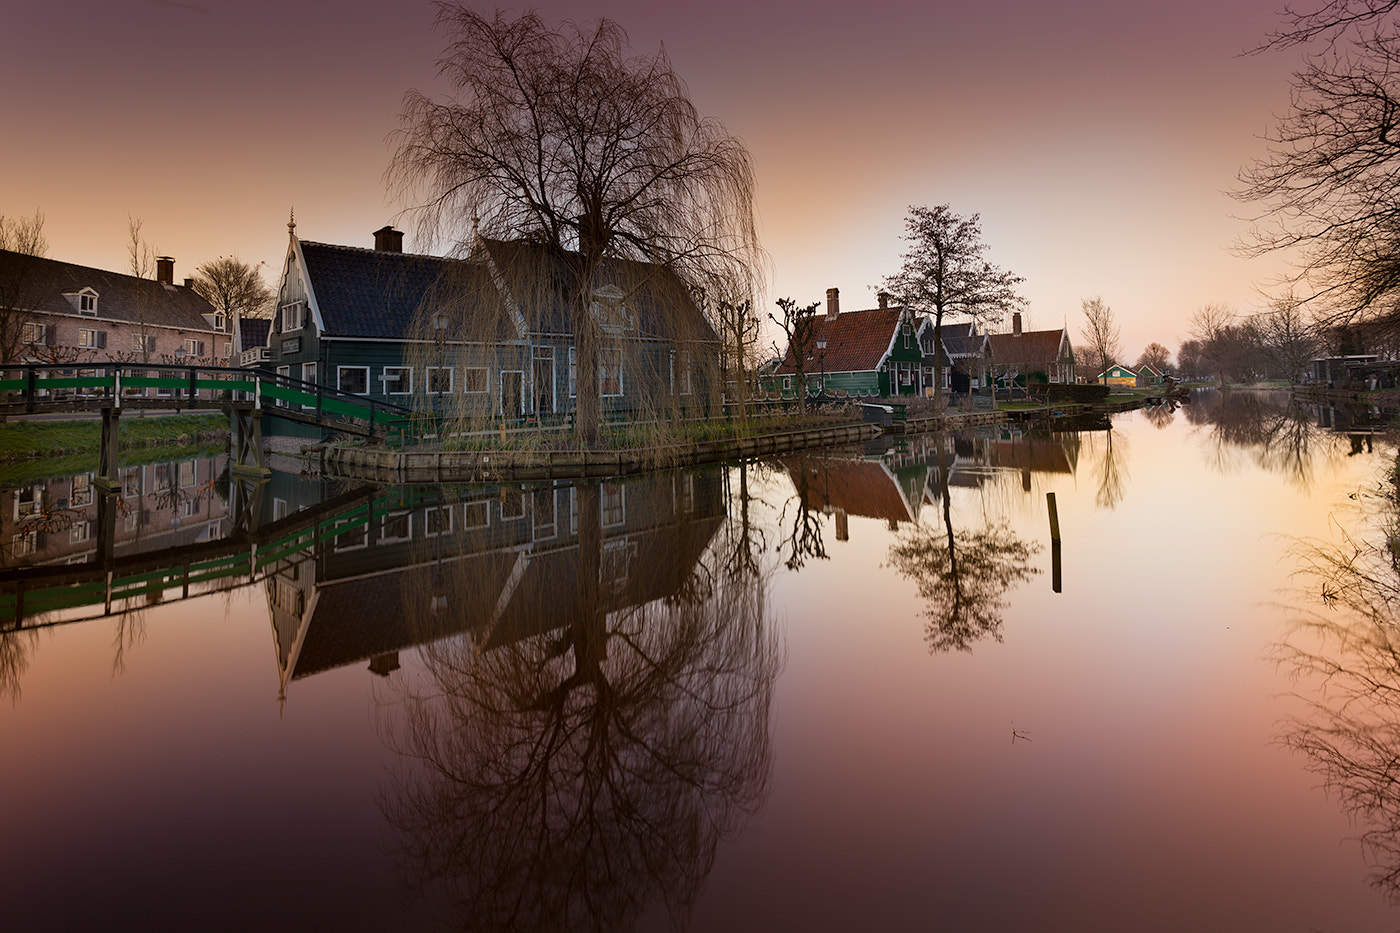 Photograph Small village by Mohamed Idrissi on 500px